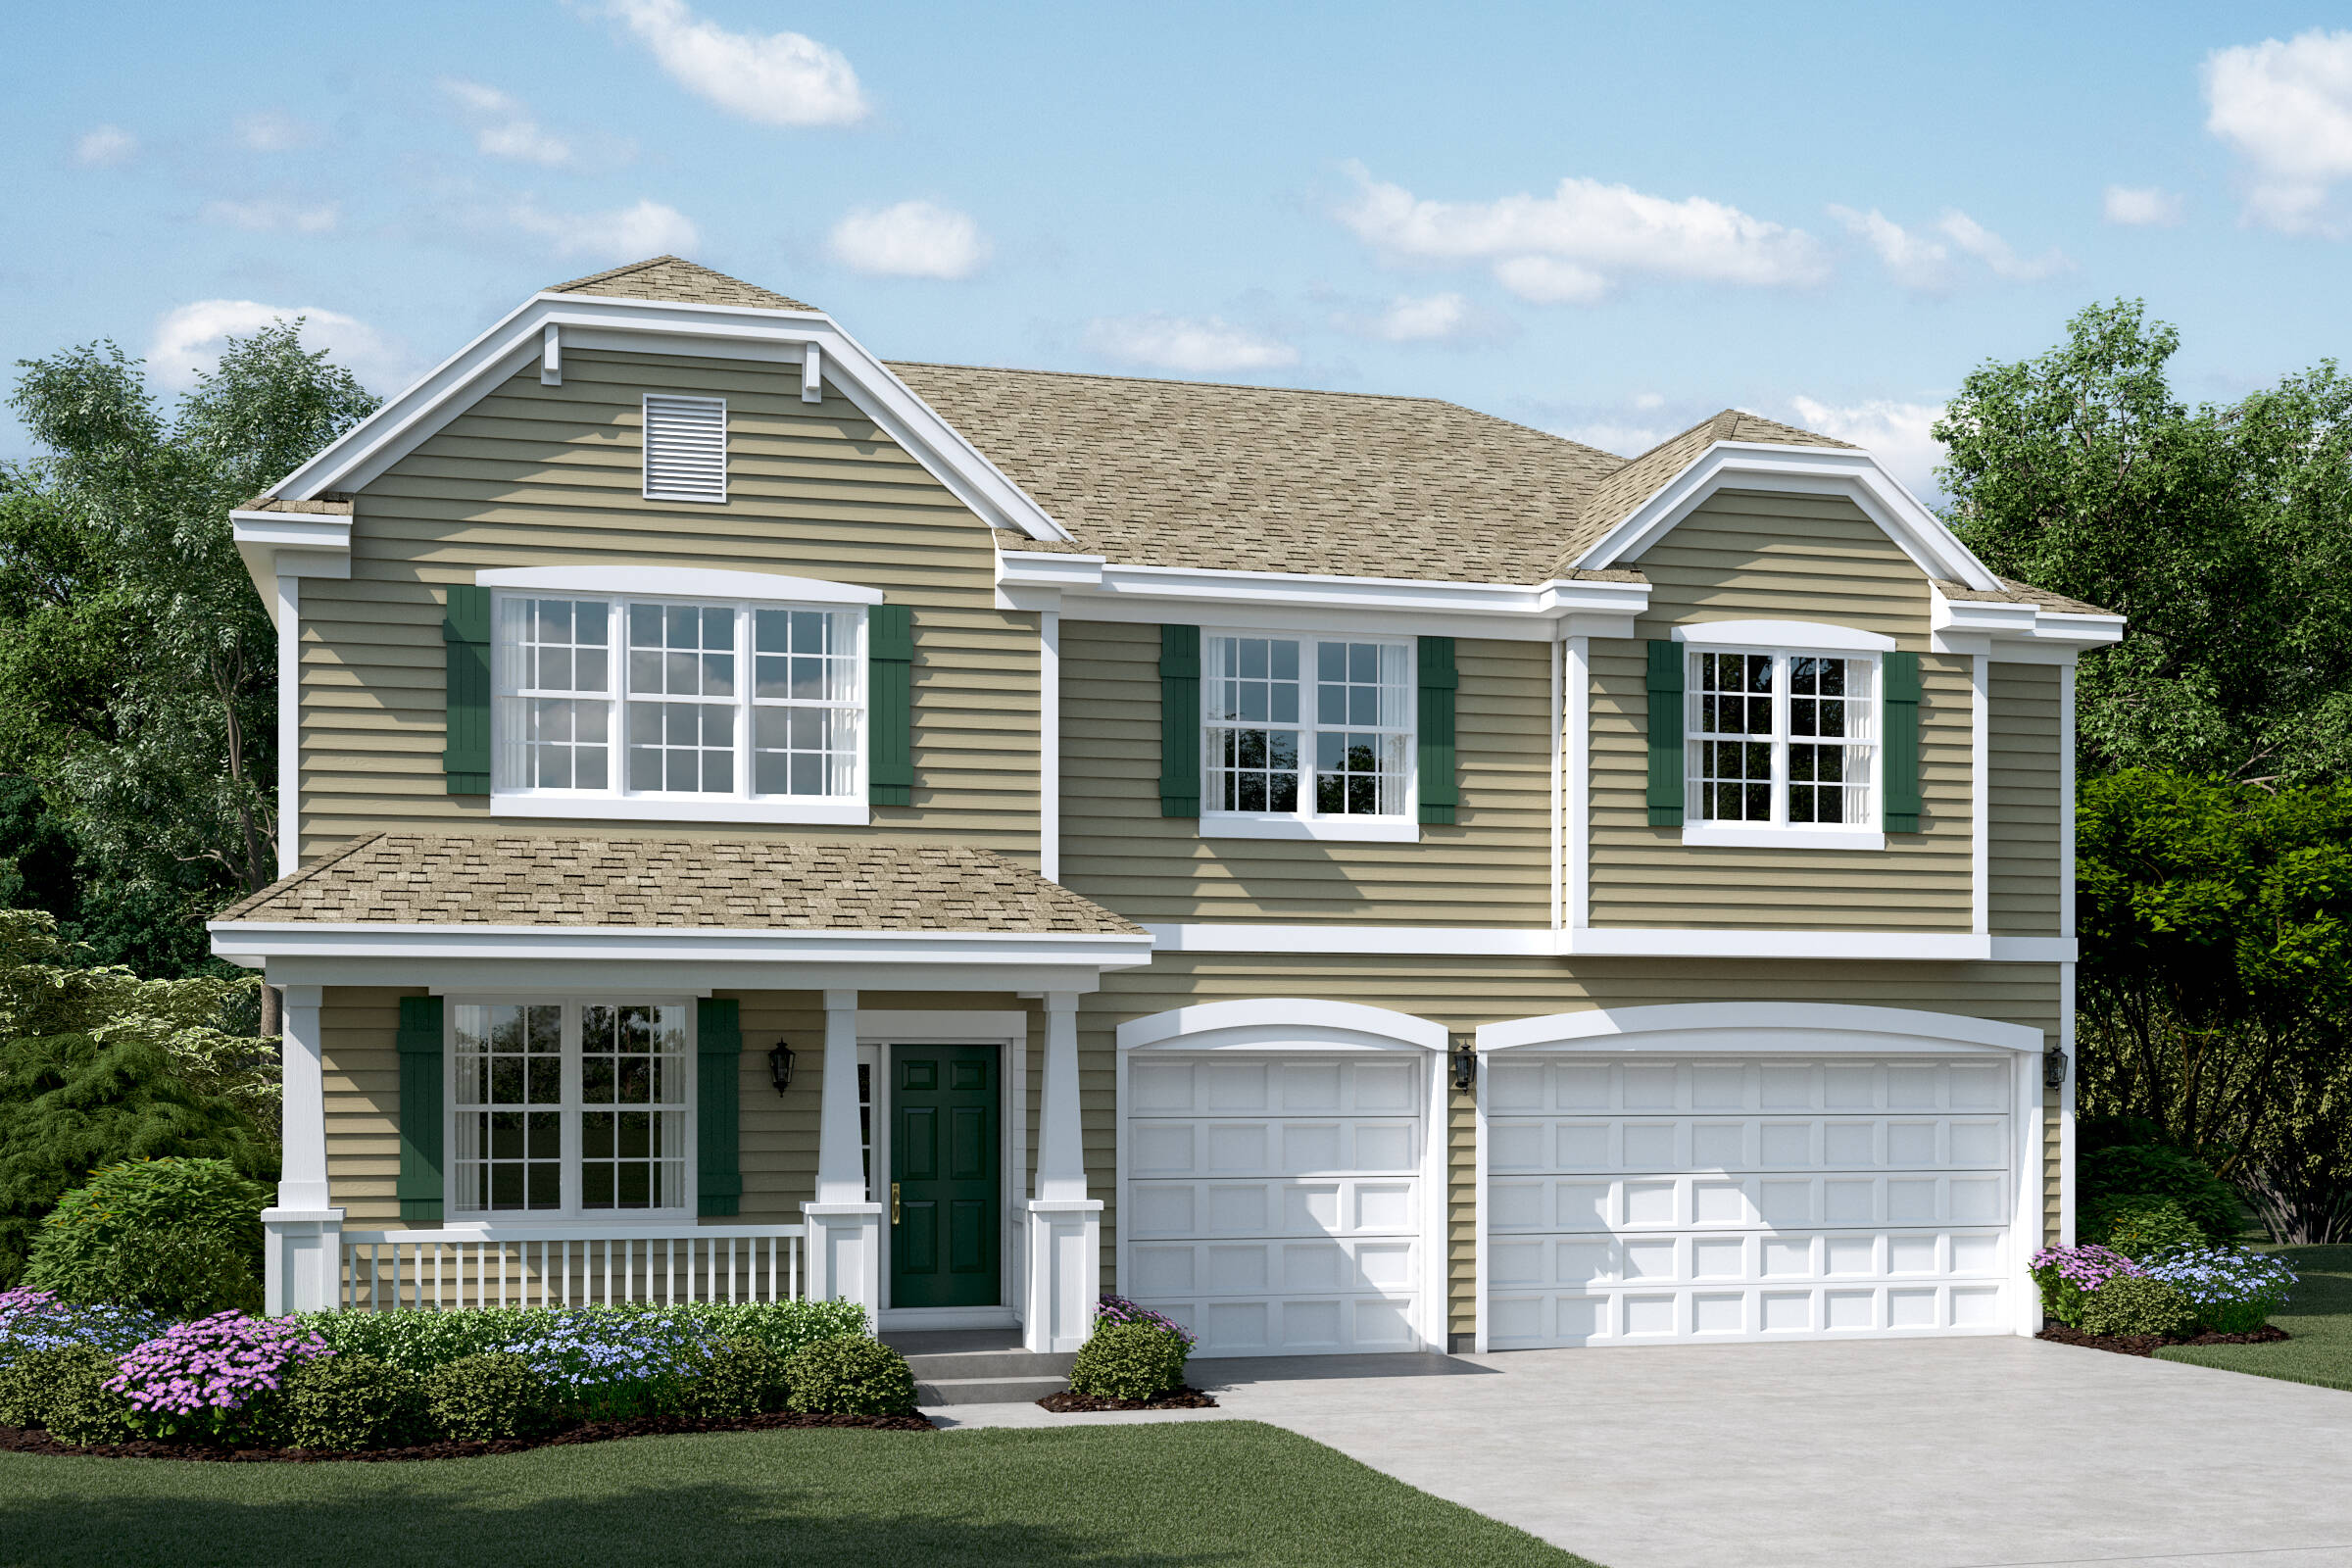 yorkshire e sagebrook single family homes in south elgin